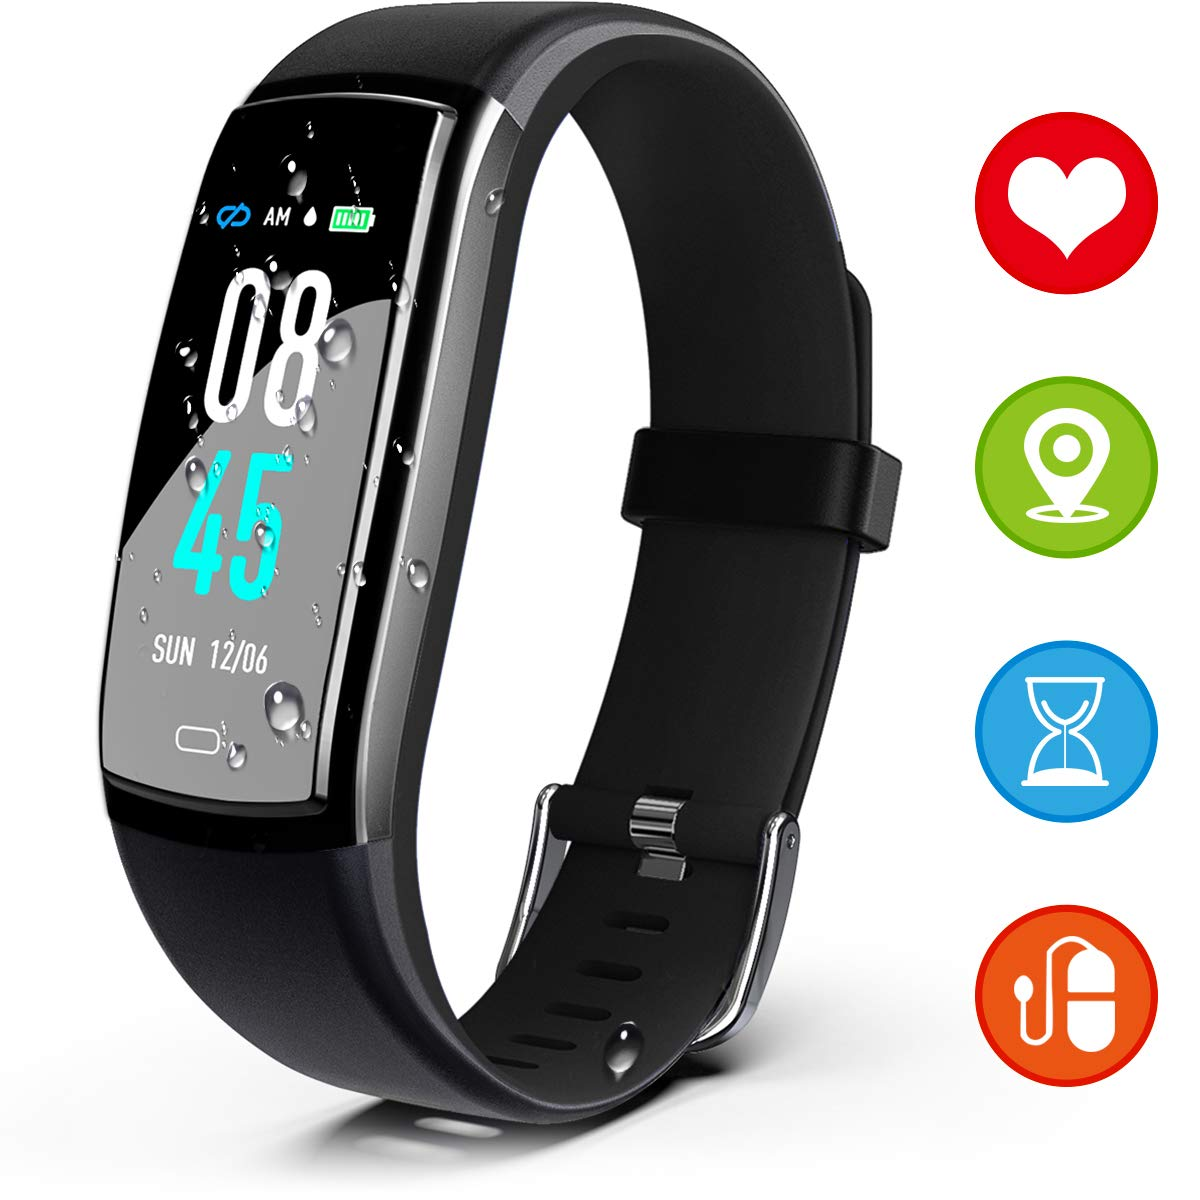 SIKADEER Fitness Tracker HR, Activity Tracker Watch with Heart Rate Monitor, IP68 Waterproof Health Tracker with Step Counter, Calorie Counter Watch for Women and Men, Kids